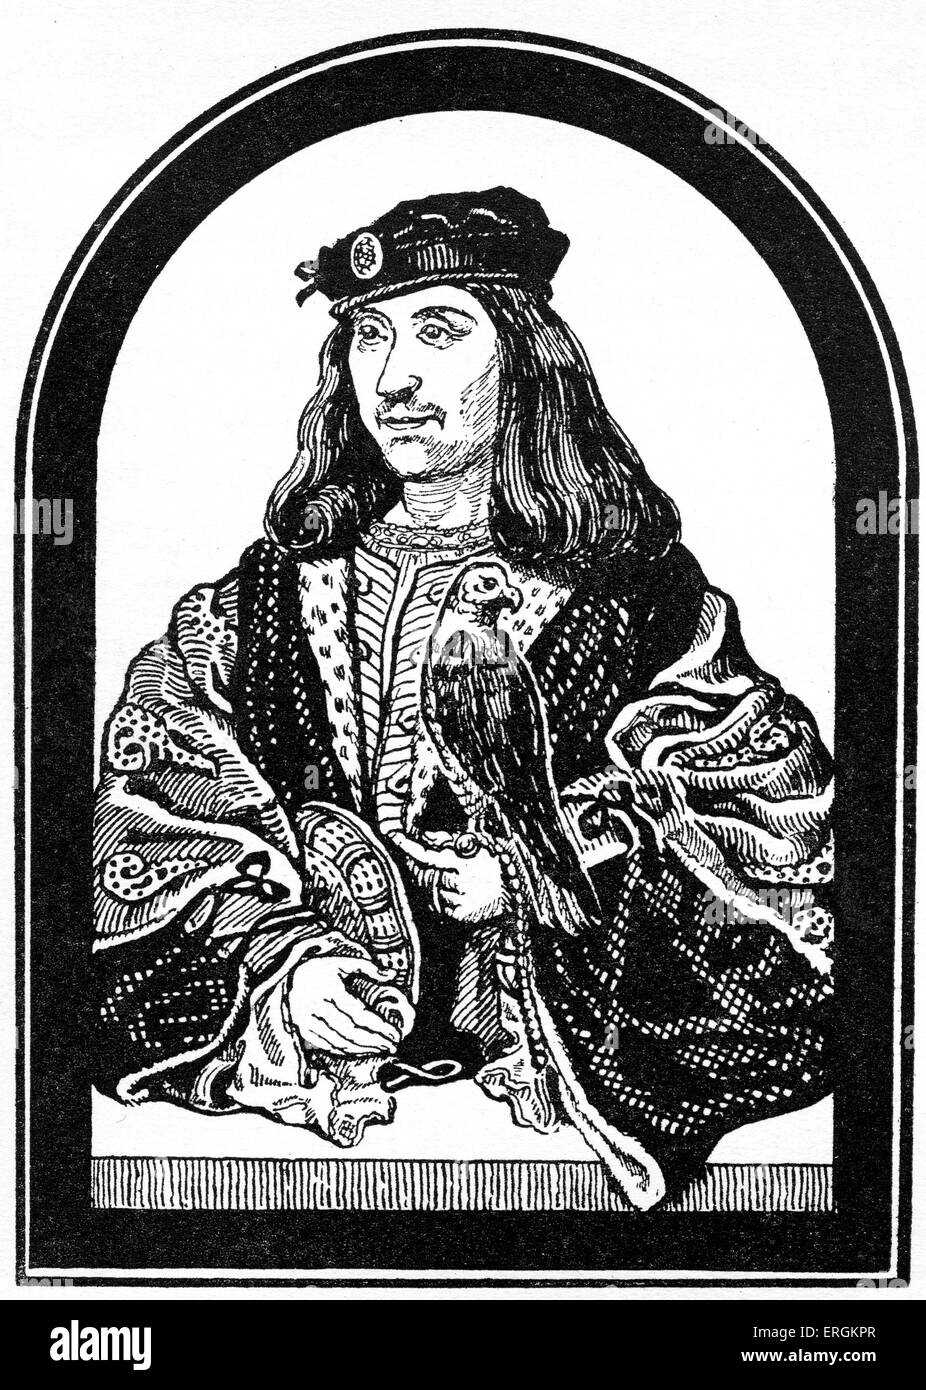 King James IV of Scotland (1473 - 1513). Member of the Stuart / Stewart house  who ruled from 1488 until his death. - Stock Image